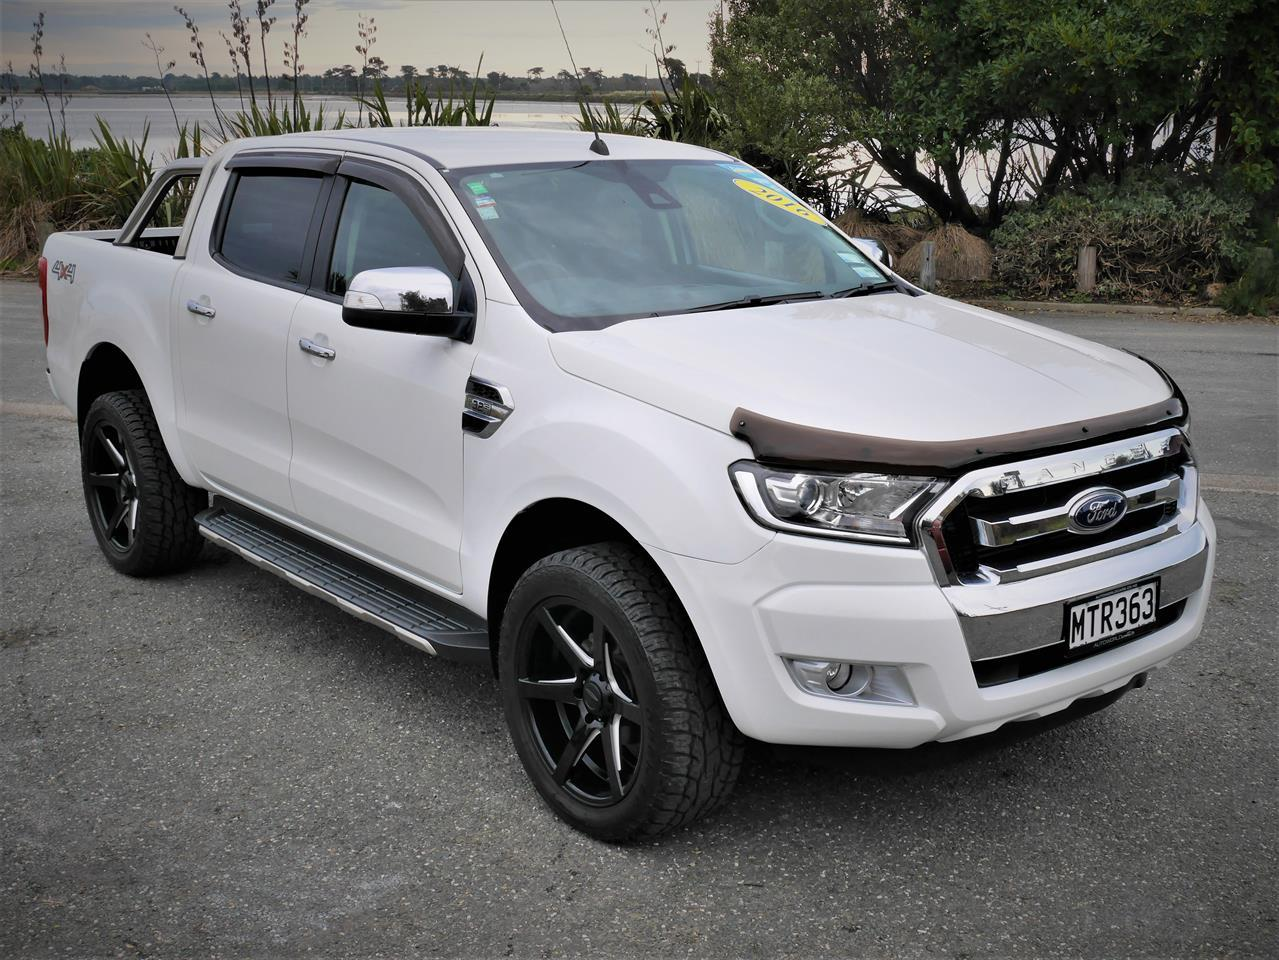 image-1, 2016 FORD RANGER XLT 3.2TD 4WD double cab at Invercargill